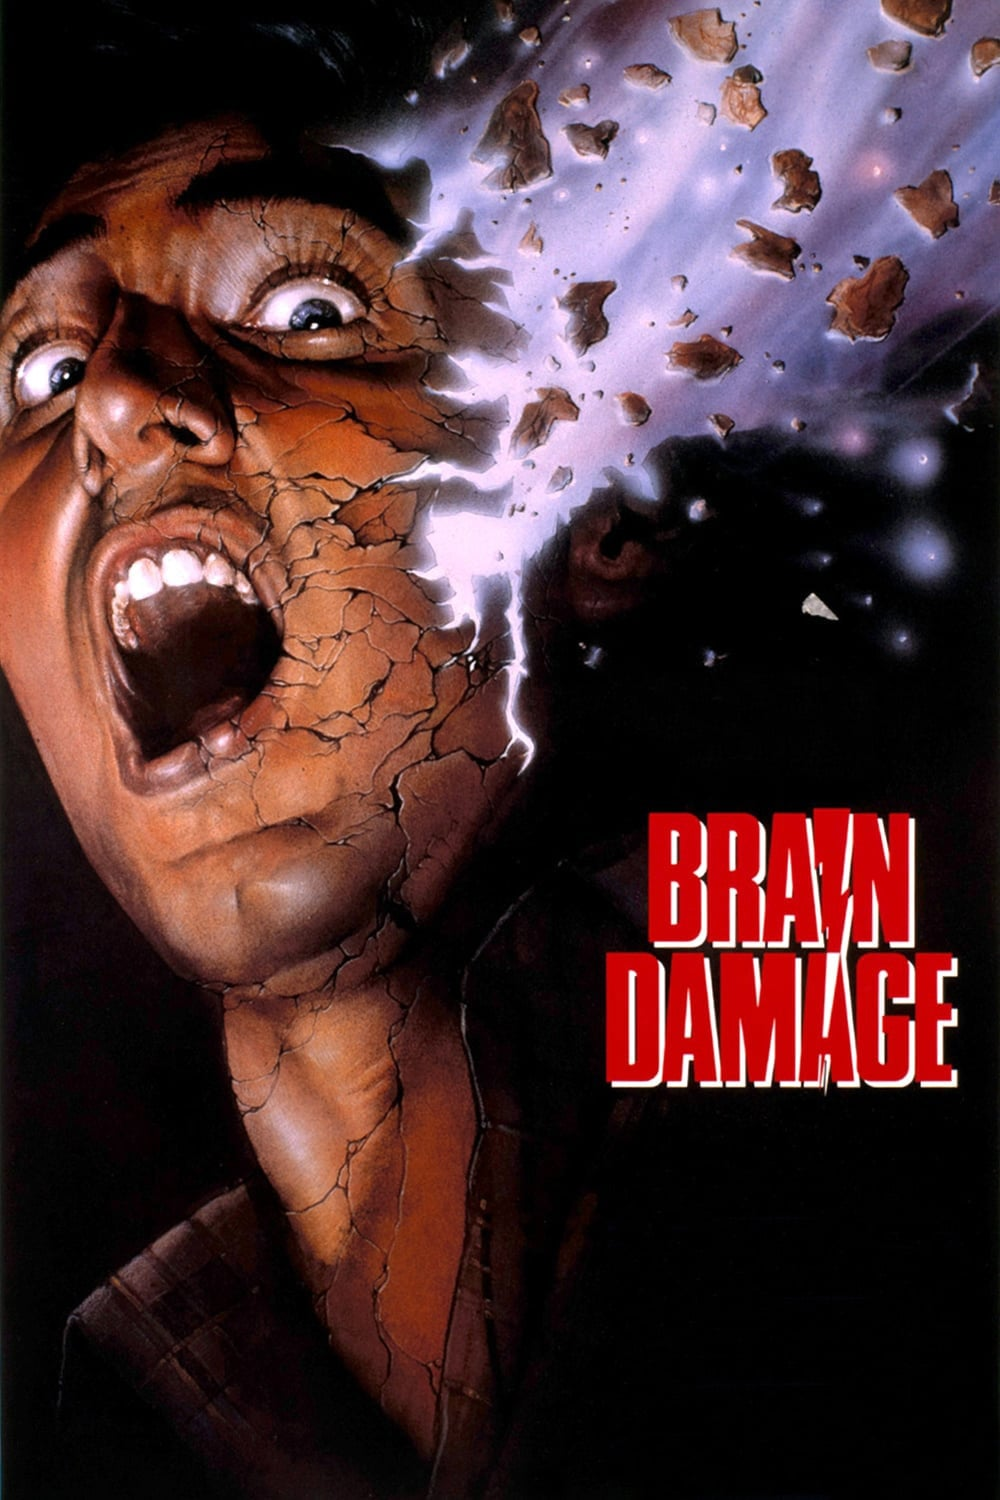 Poster for BRAIN DAMAGE